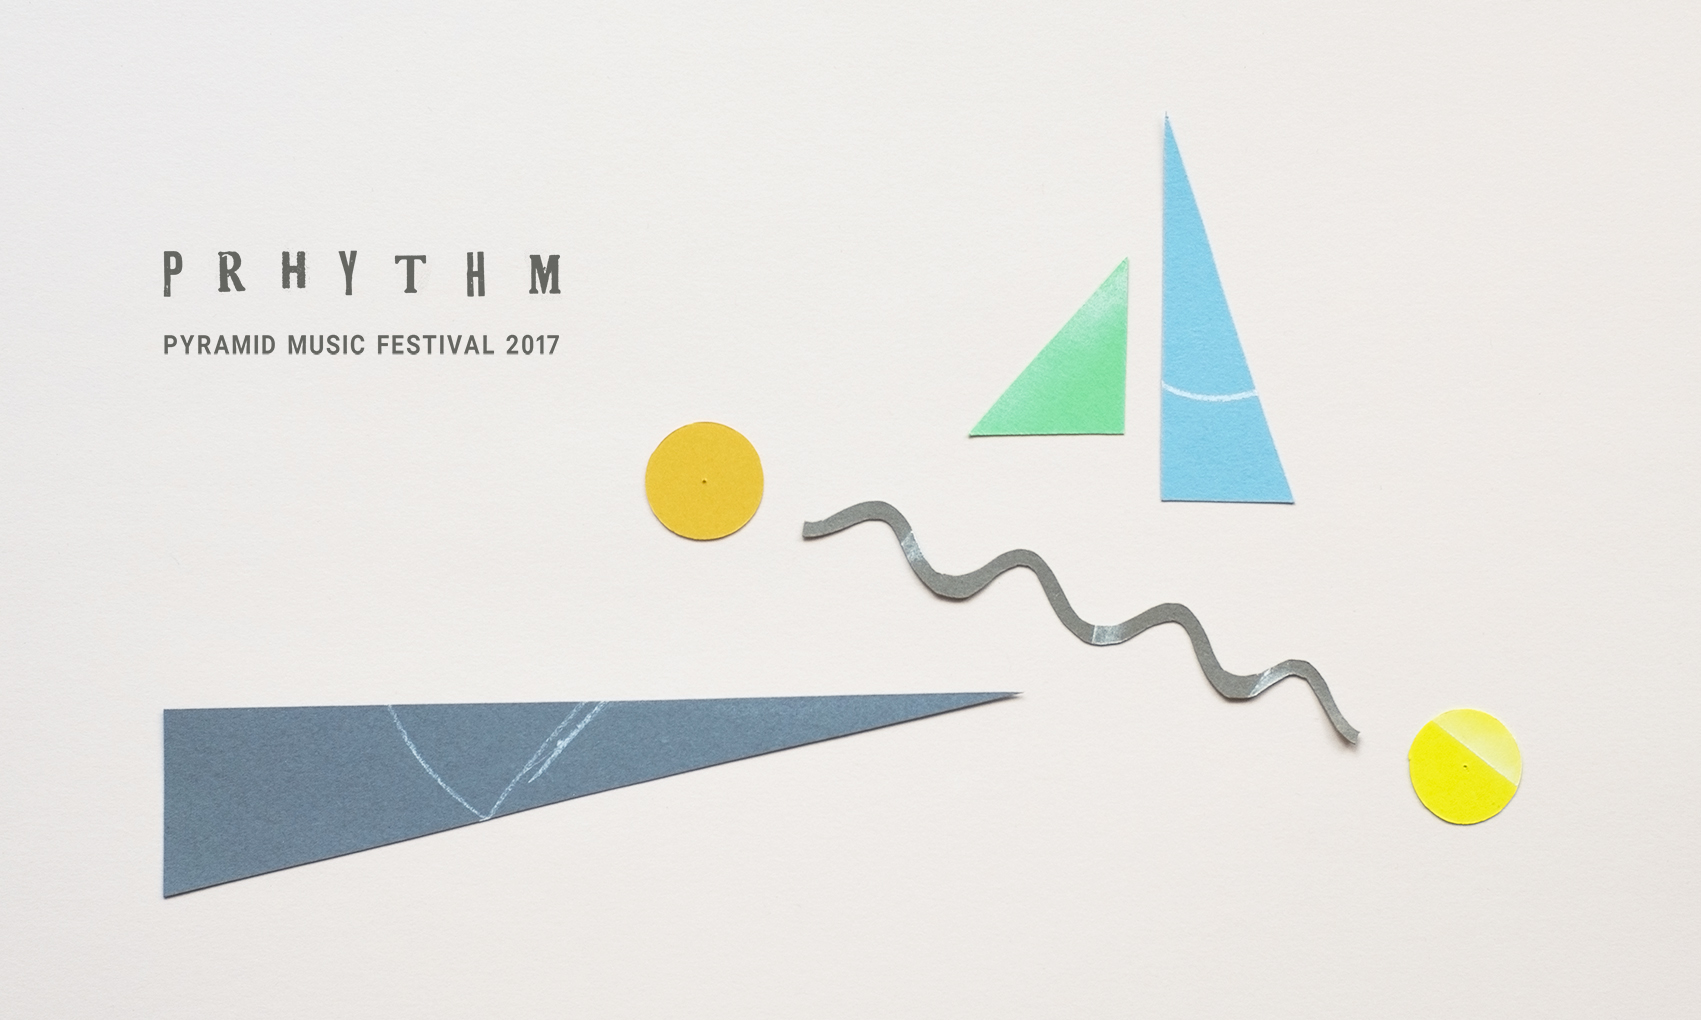 PRHYTHM PYRAMID MUSIC FESTIVAL2017 at 室生山上芸術の森公園